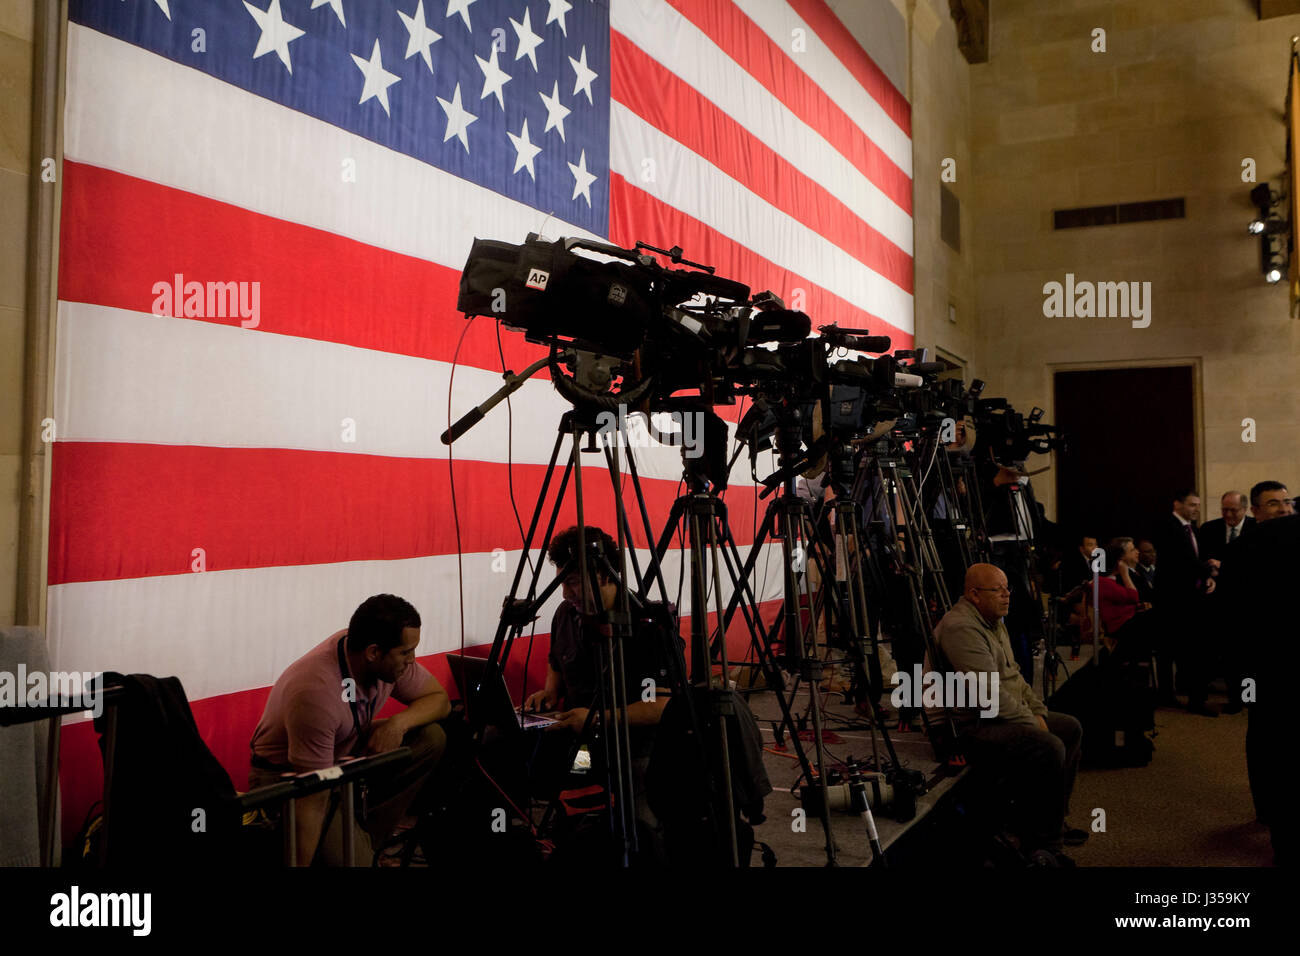 News cameras set up during press event - USA - Stock Image